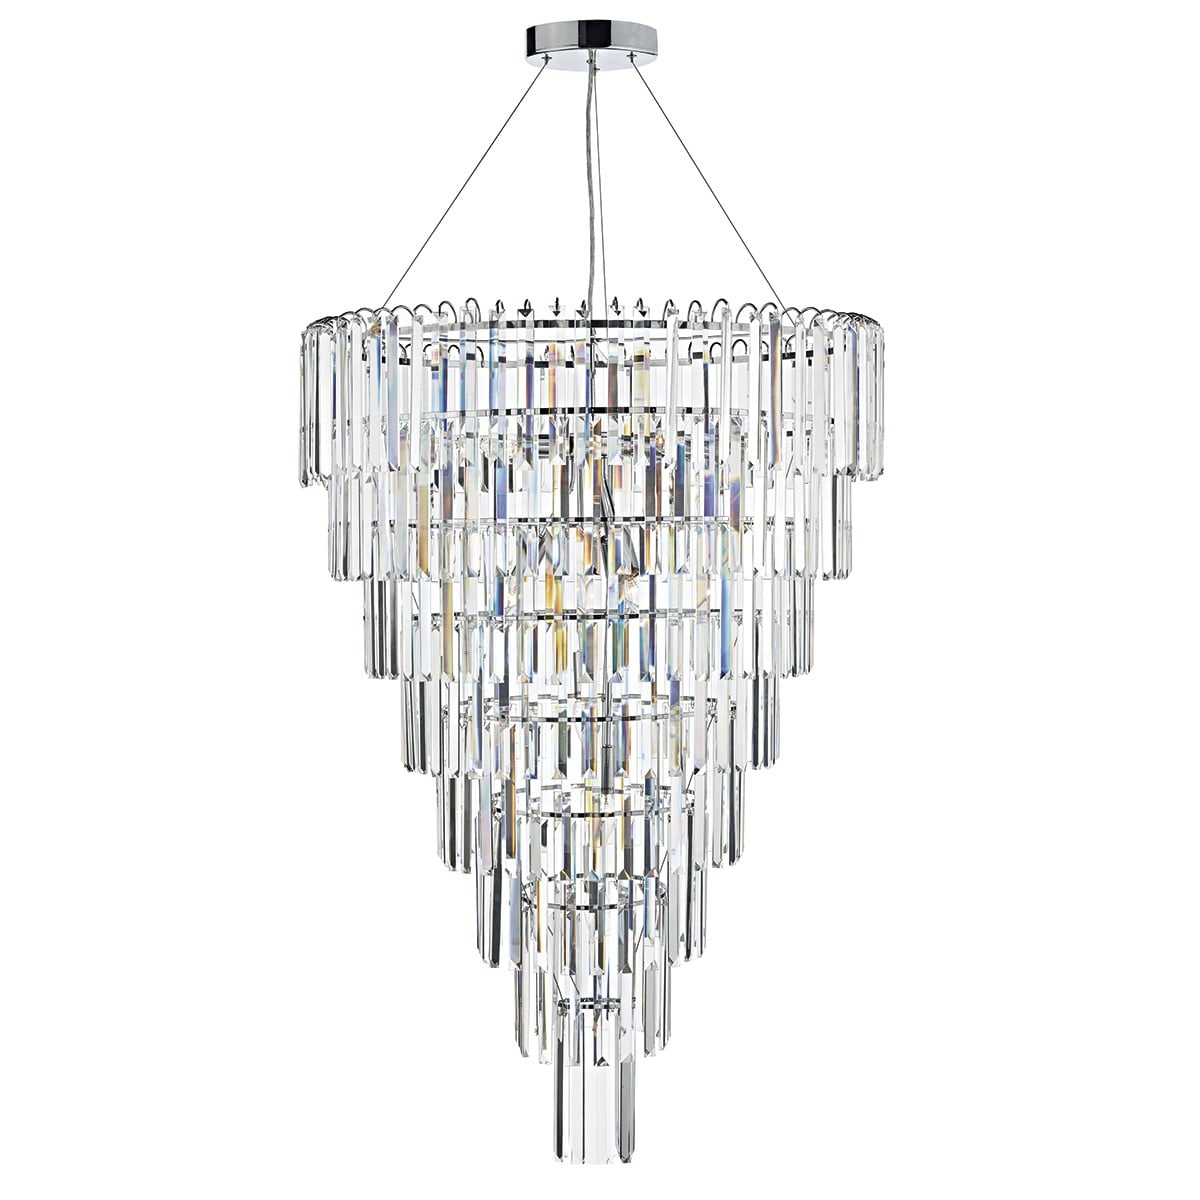 Dar JUP1250 Jupiter 12 Light Pendant in Polished Chrome.